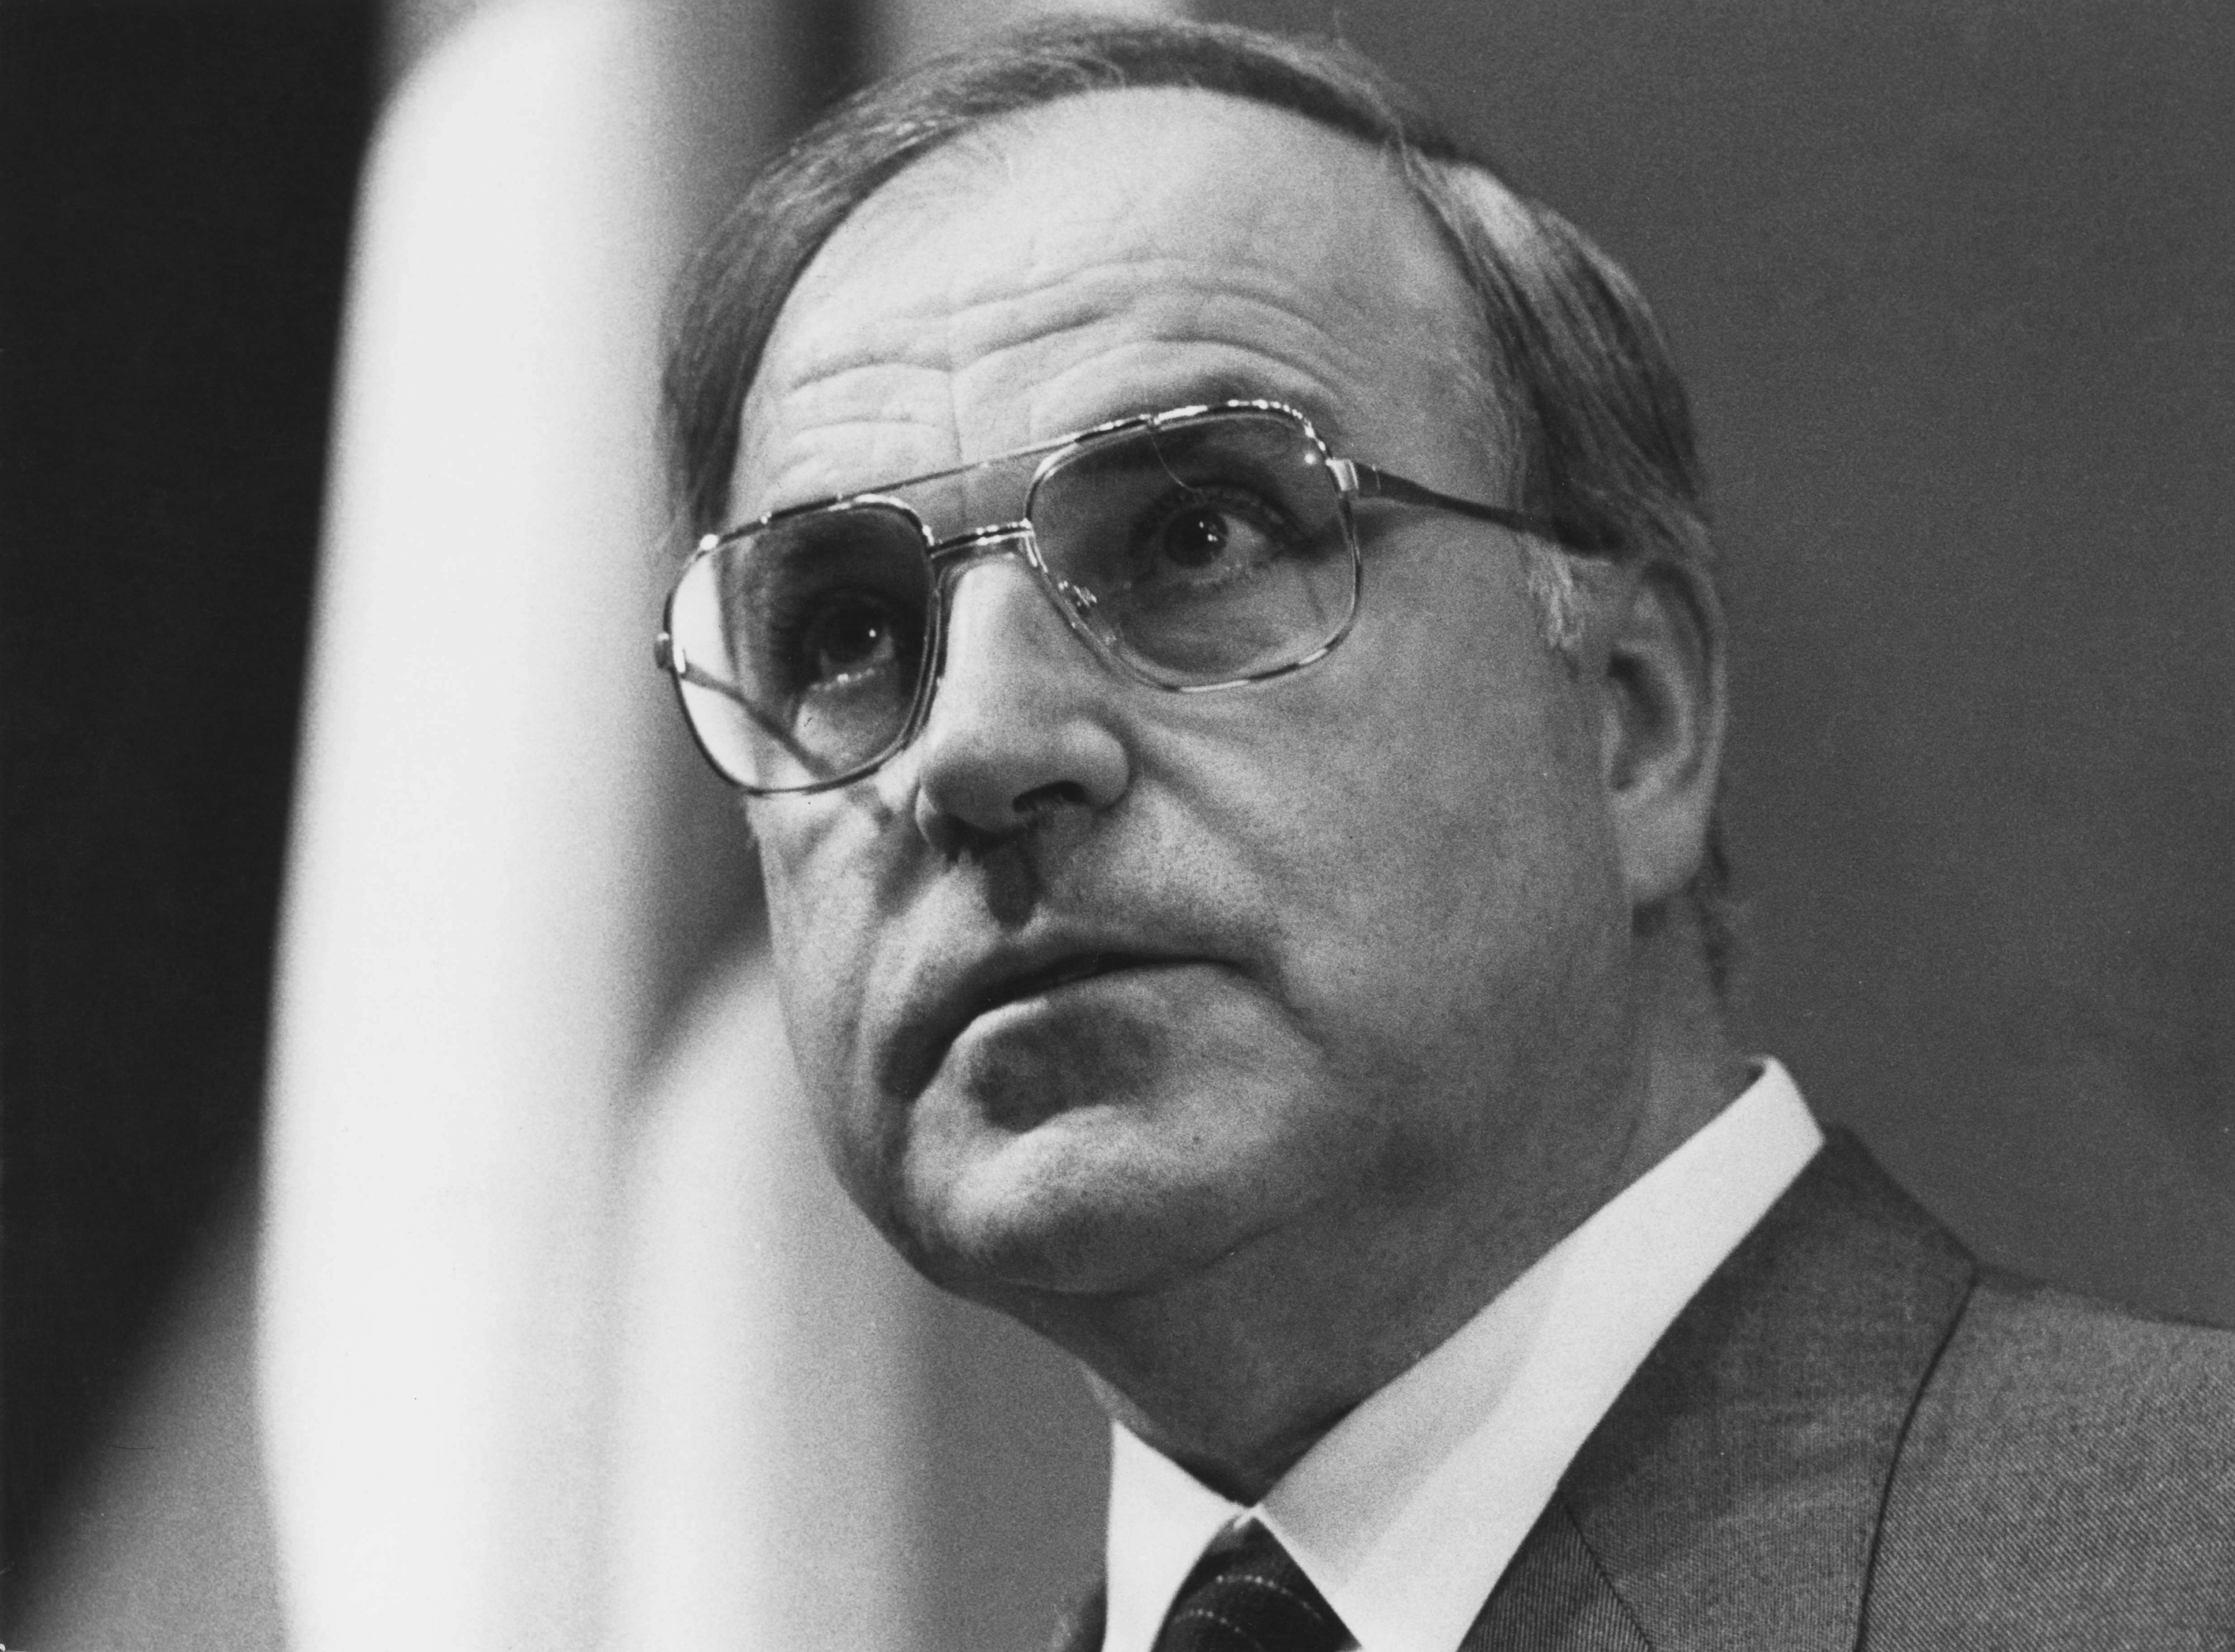 German politician Helmut Kohl, chairman of the opposition Christian Democratic Union (CDU), May 1981.